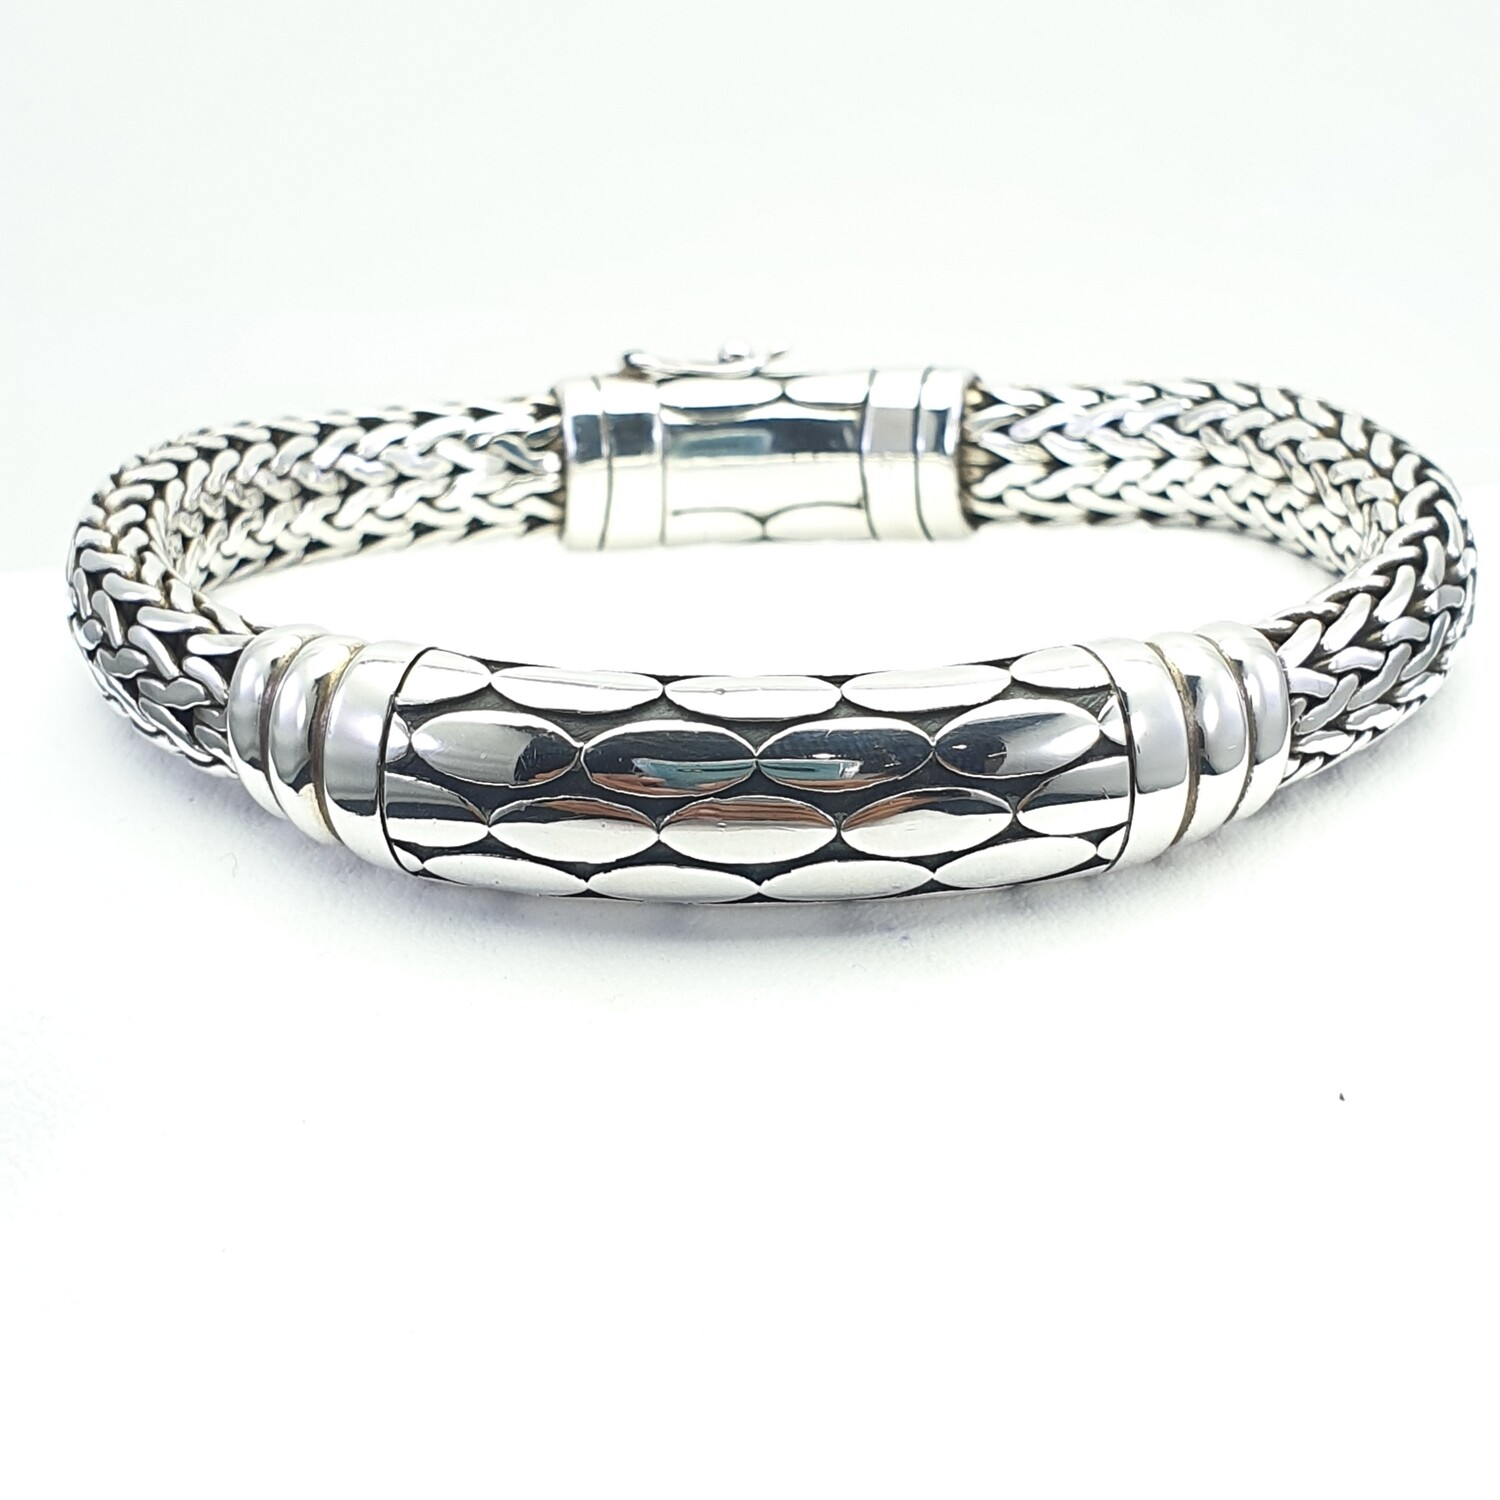 Cracked earth Silver Bracelet